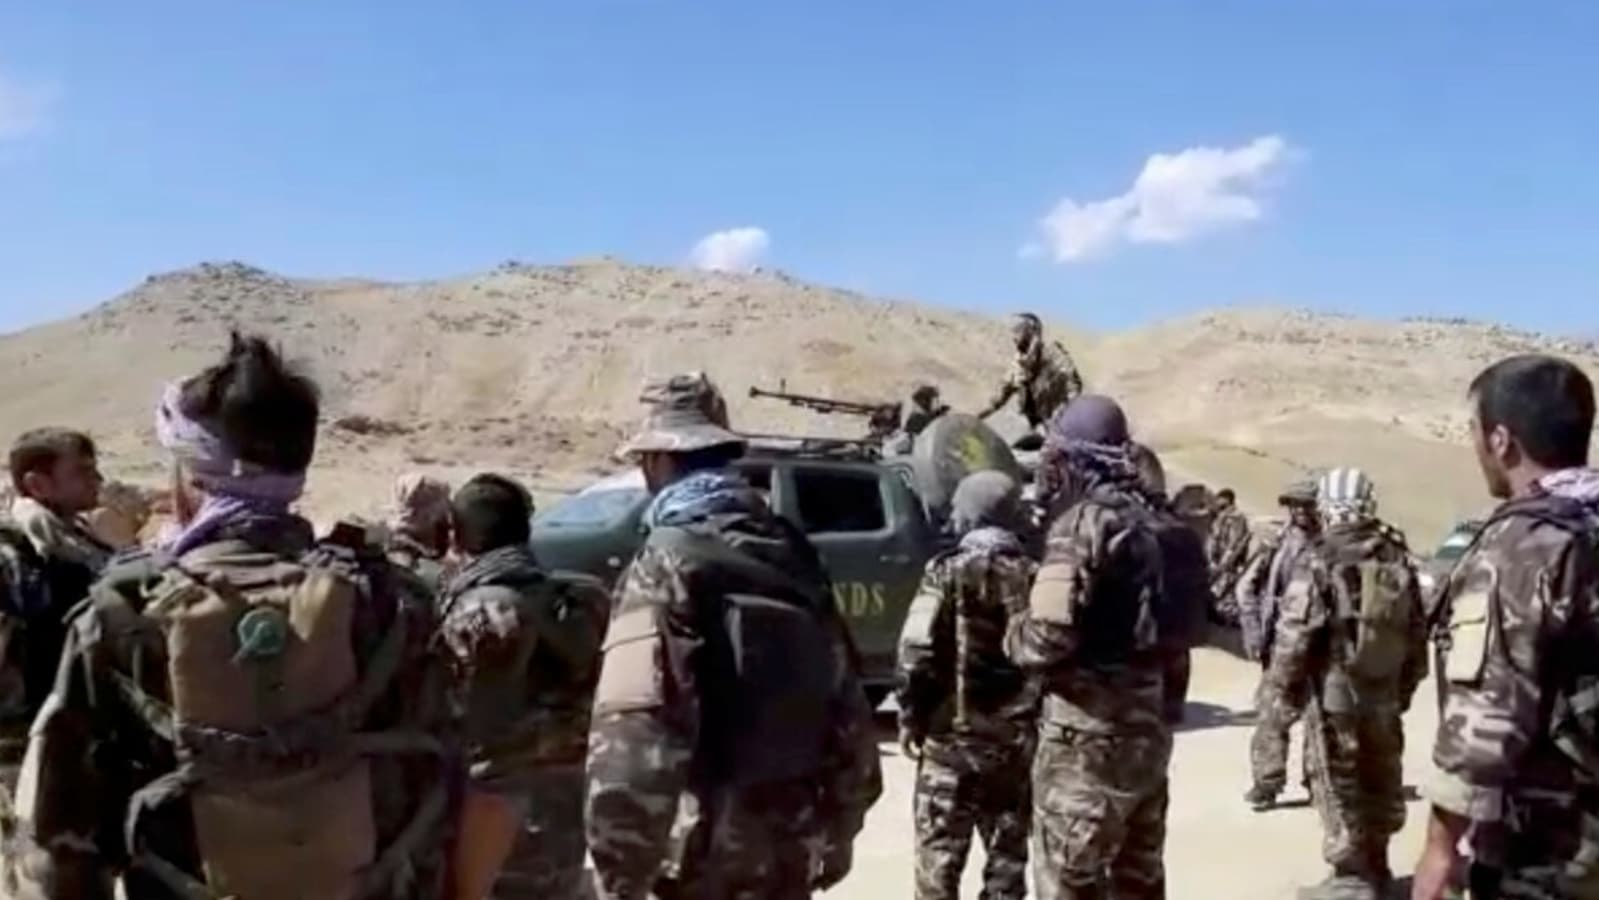 About 600 Taliban killed in Afghanistan's Panjshir, claim resistance forces